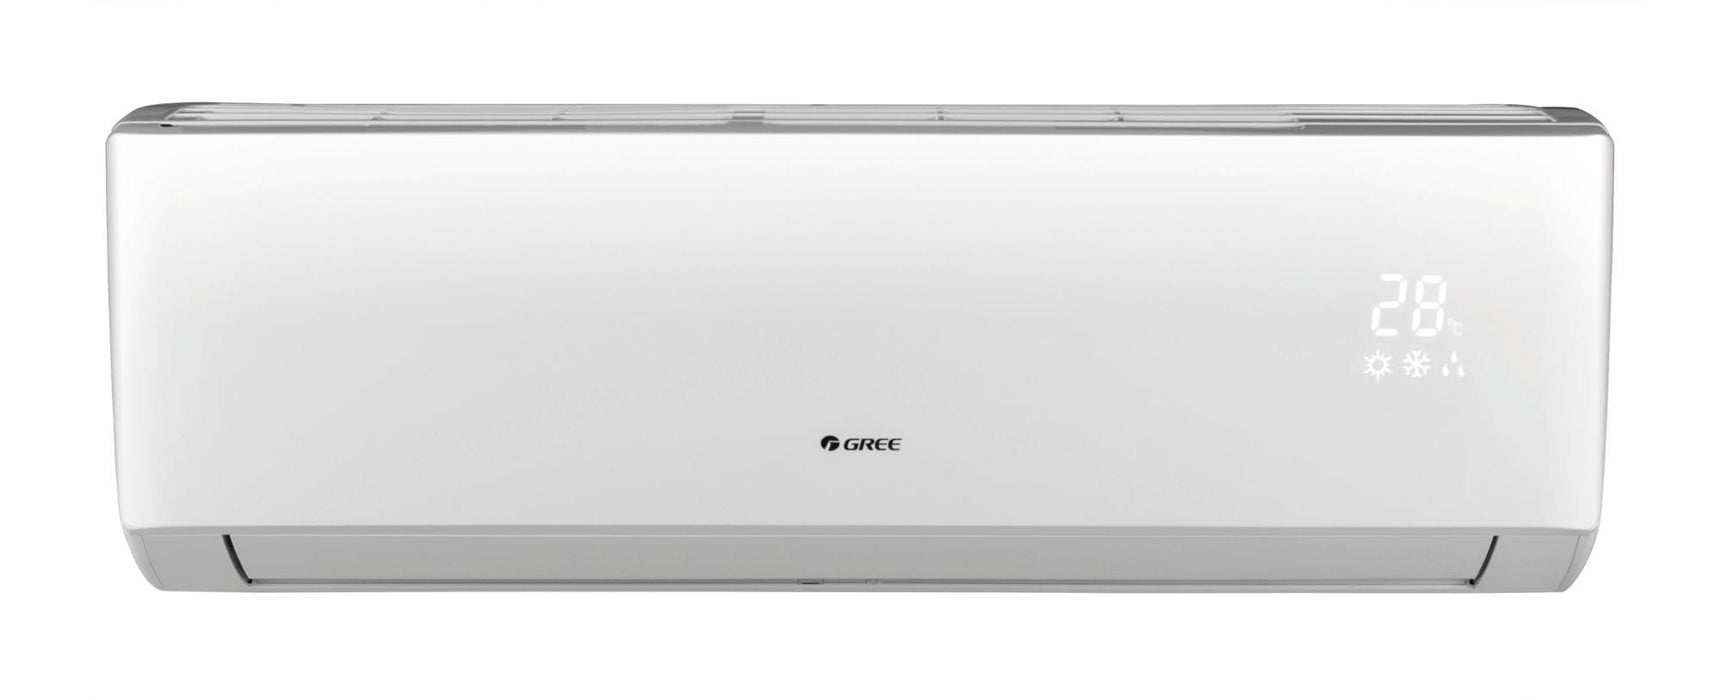 Gree 36,000 BTU 18 SEER VIREO+ Wall Mount Ductless Mini Split Indoor Unit 208-230V